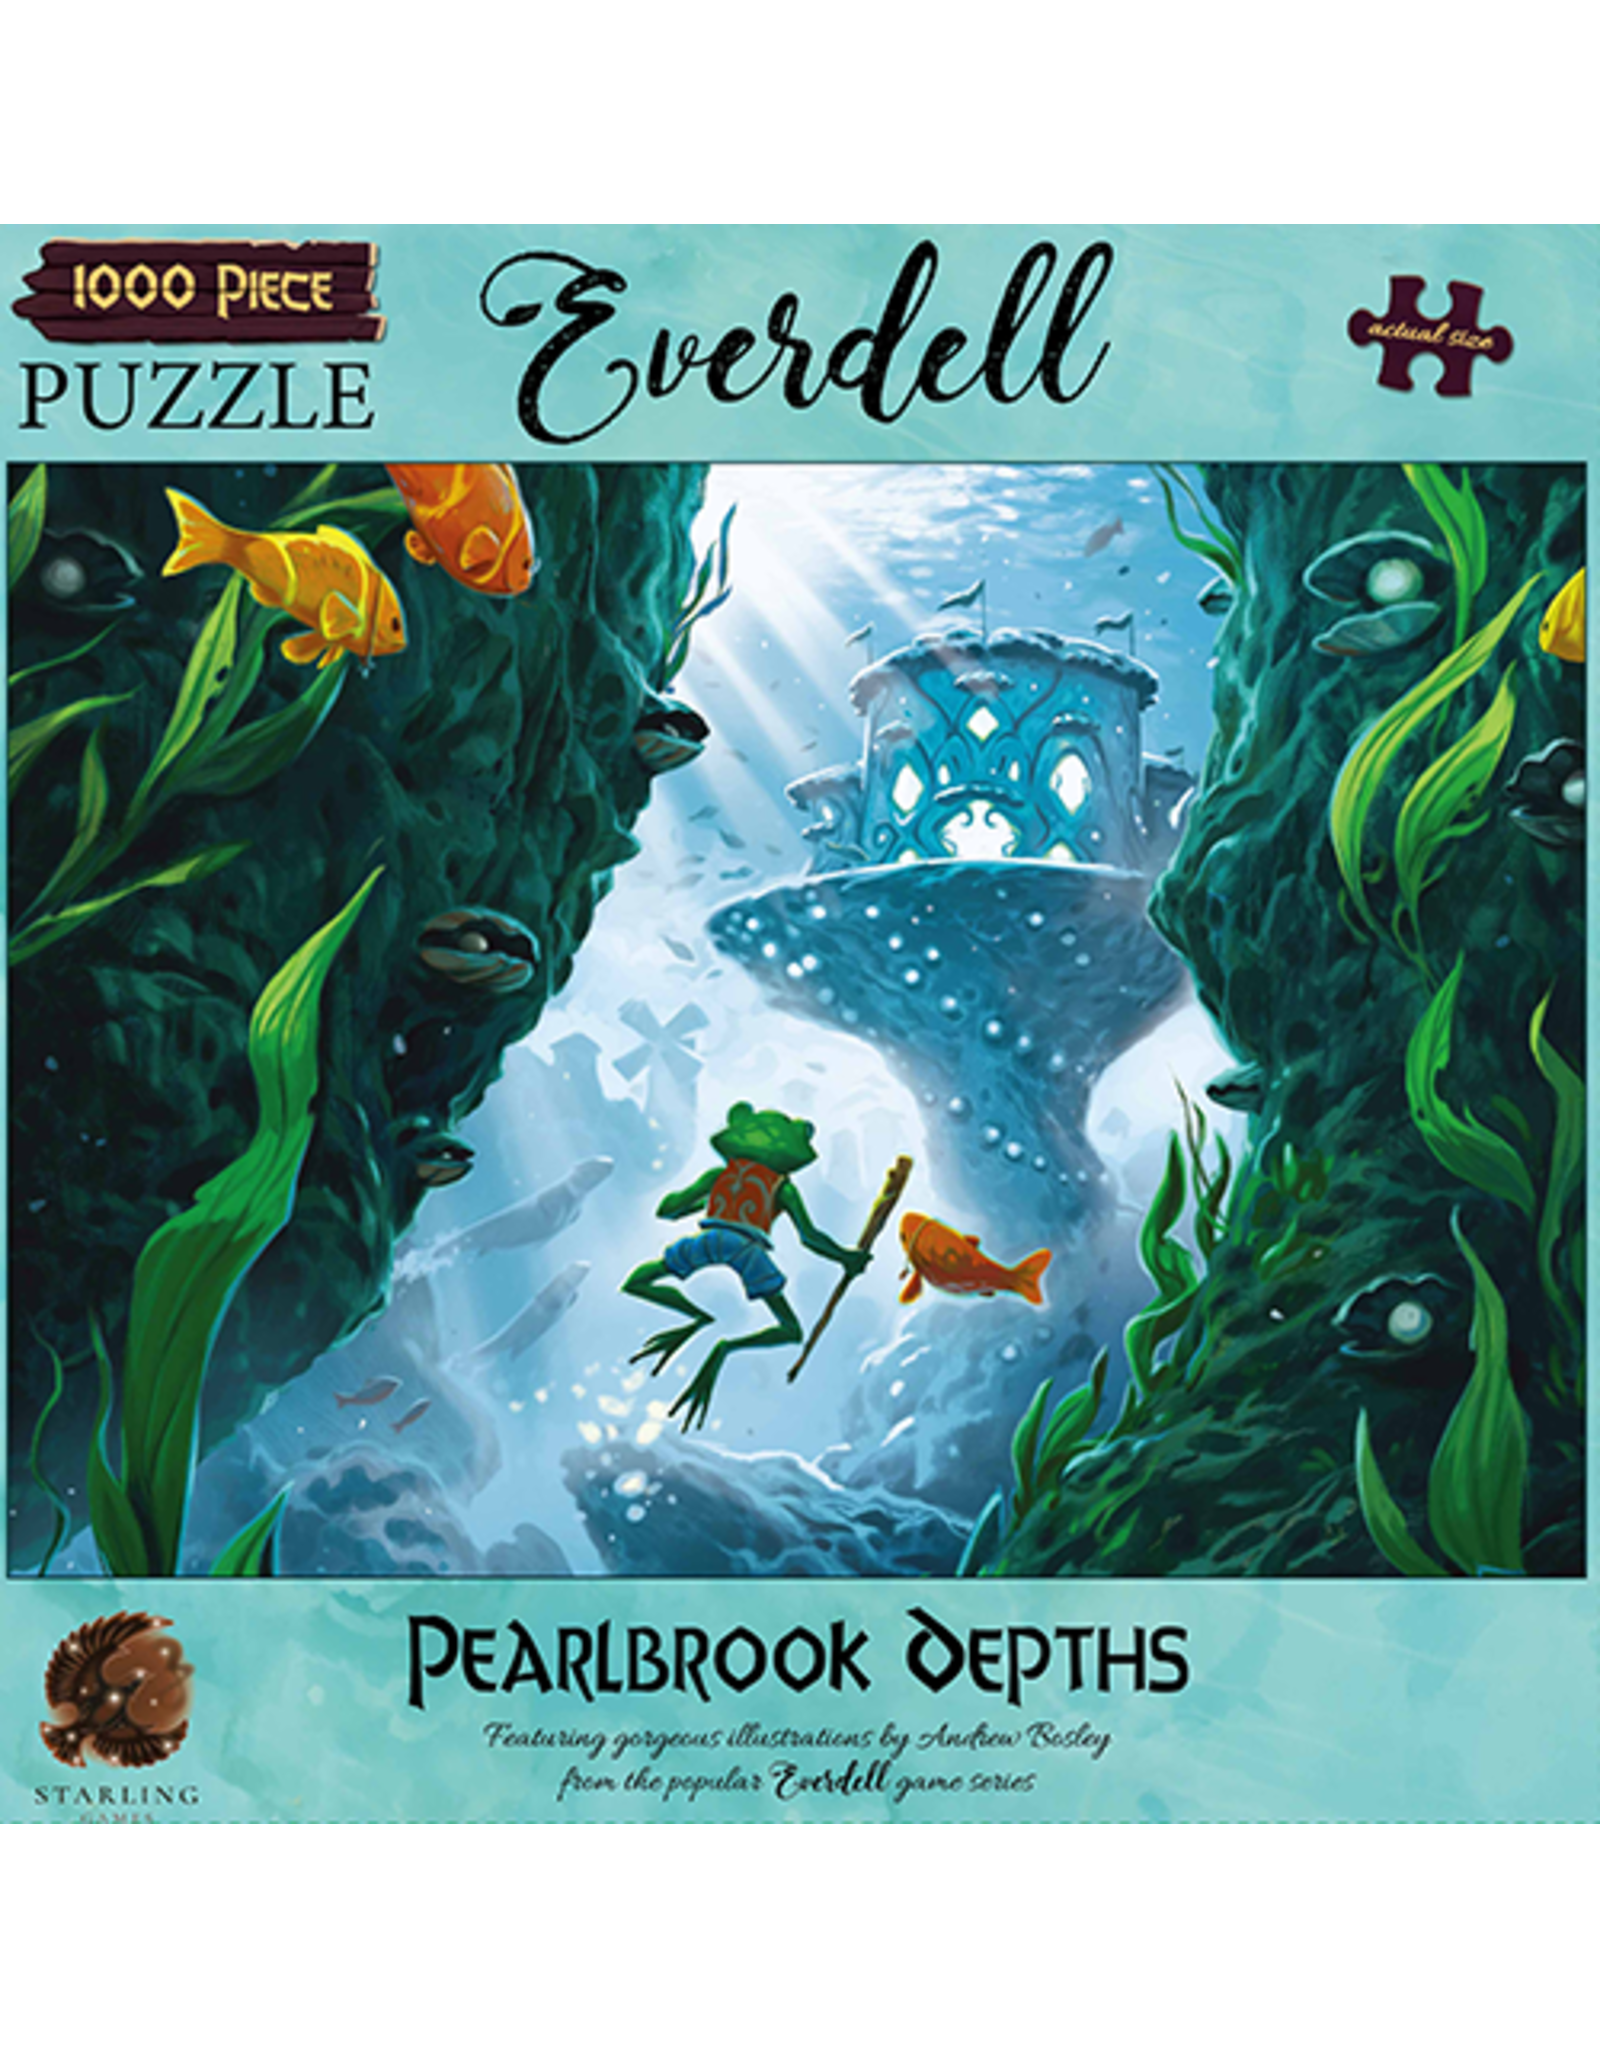 Tabletop Tycoon Everdell: Puzzle Pearlbrook Depths